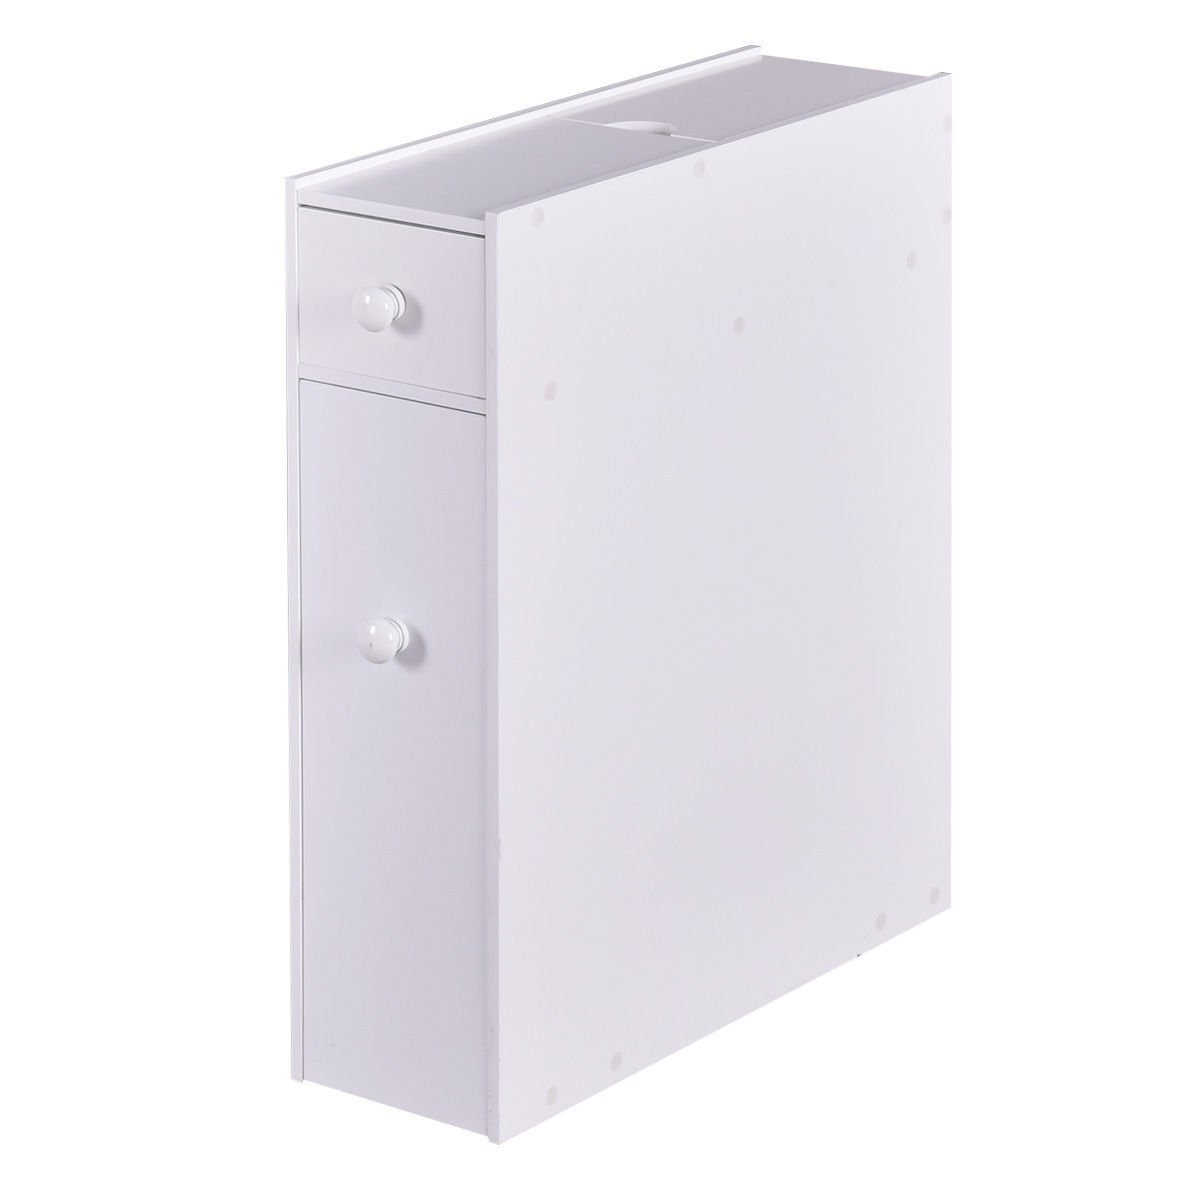 White Bahtroom Floor Cabinet Stand Storage Unit Space Saver w/ Sliding Drawer